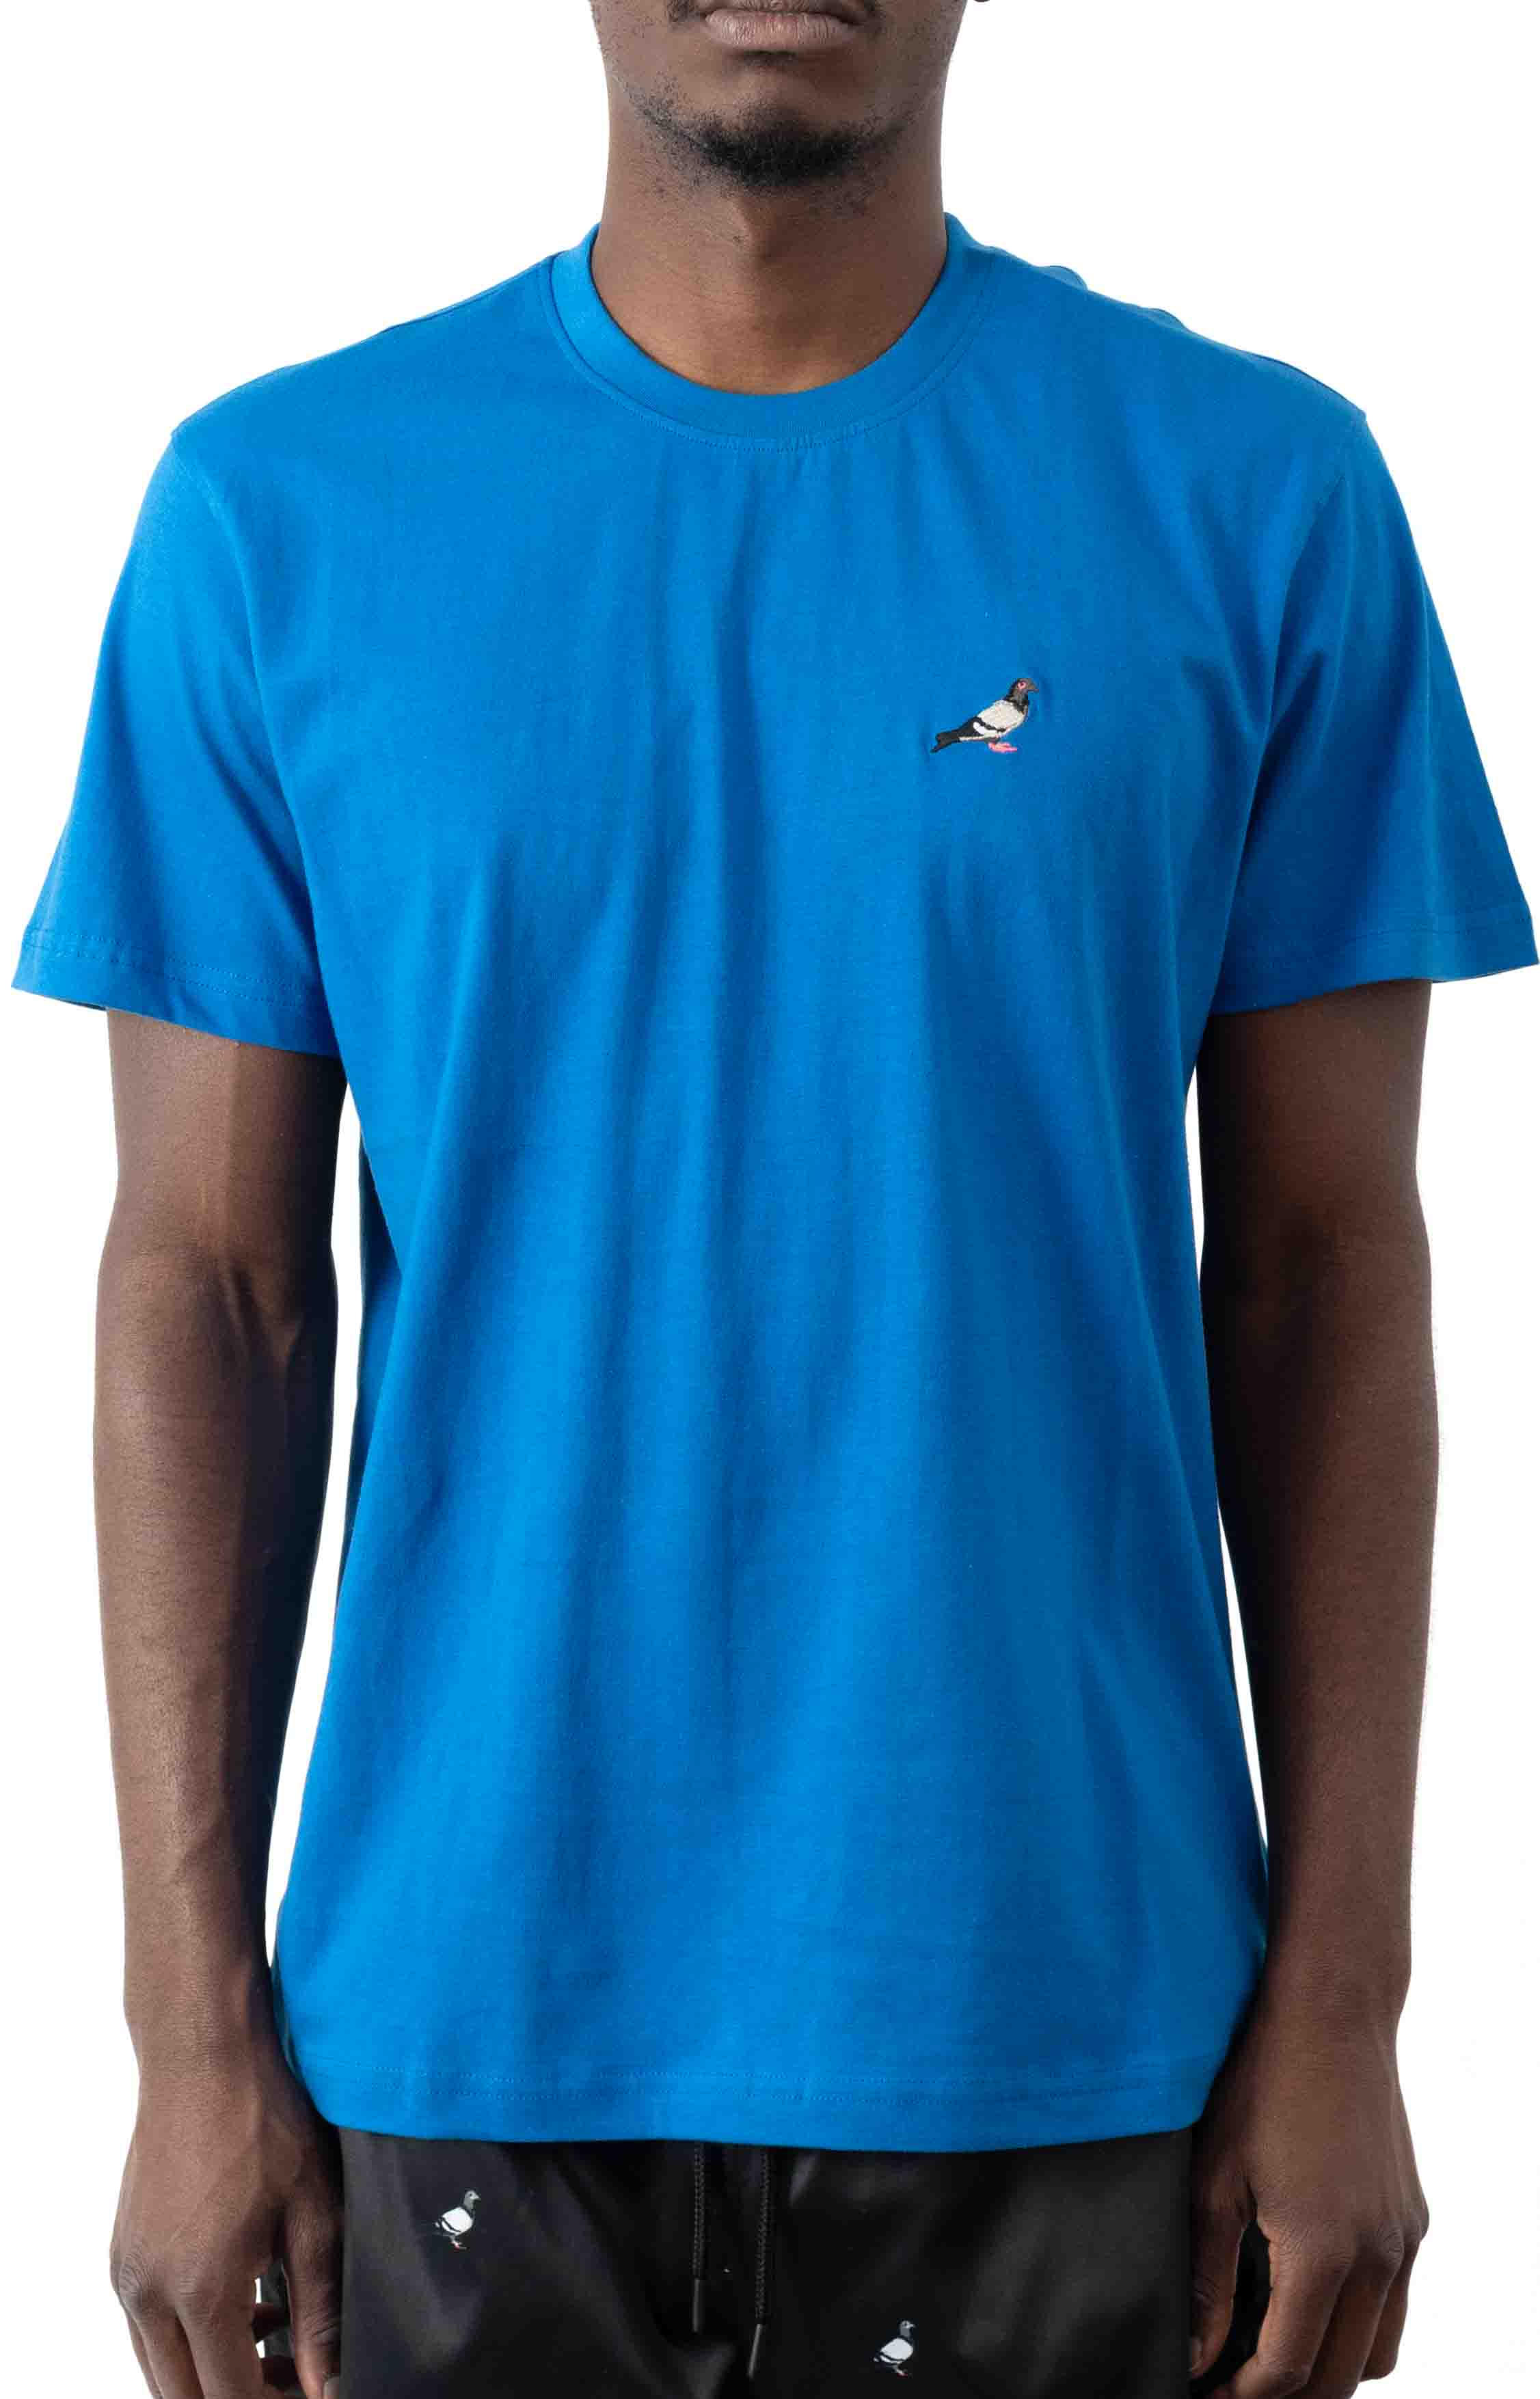 Embroidered Pigeon T-Shirt - Blue